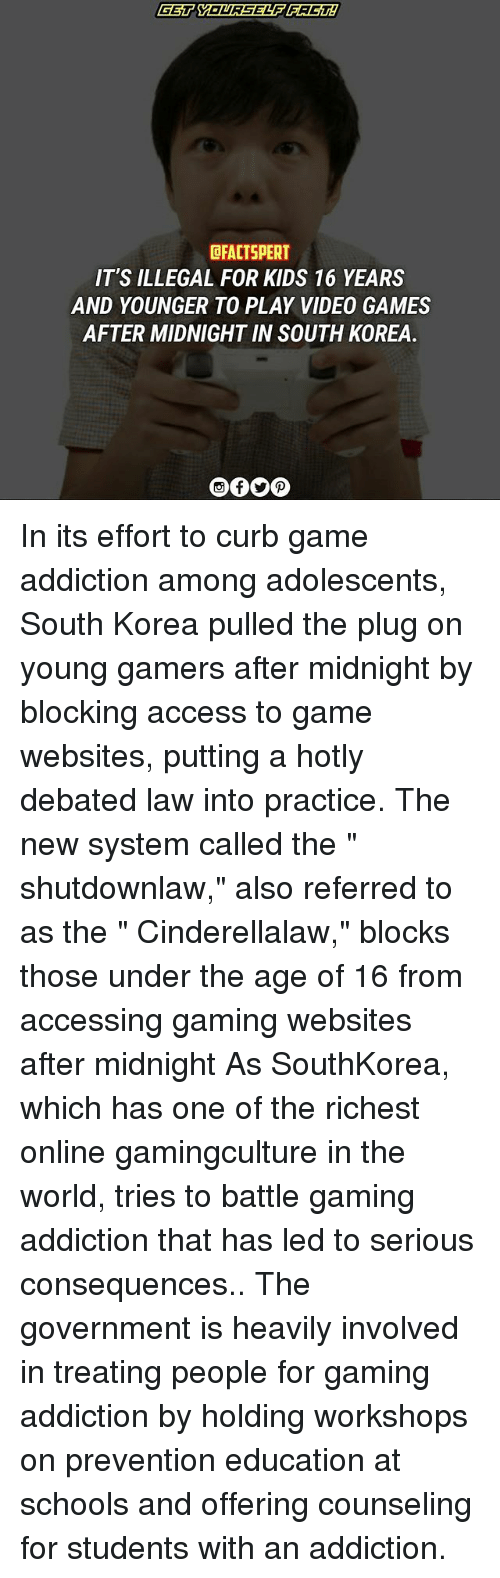 "Memes, Video Games, and Access: CFACTSPERT  IT'S ILLEGAL FOR KIDS 16 YEARS  AND YOUNGER TO PLAY VIDEO GAMES  AFTER MIDNIGHT IN SOUTH KOREA In its effort to curb game addiction among adolescents, South Korea pulled the plug on young gamers after midnight by blocking access to game websites, putting a hotly debated law into practice. The new system called the "" shutdownlaw,"" also referred to as the "" Cinderellalaw,"" blocks those under the age of 16 from accessing gaming websites after midnight As SouthKorea, which has one of the richest online gamingculture in the world, tries to battle gaming addiction that has led to serious consequences.. The government is heavily involved in treating people for gaming addiction by holding workshops on prevention education at schools and offering counseling for students with an addiction."